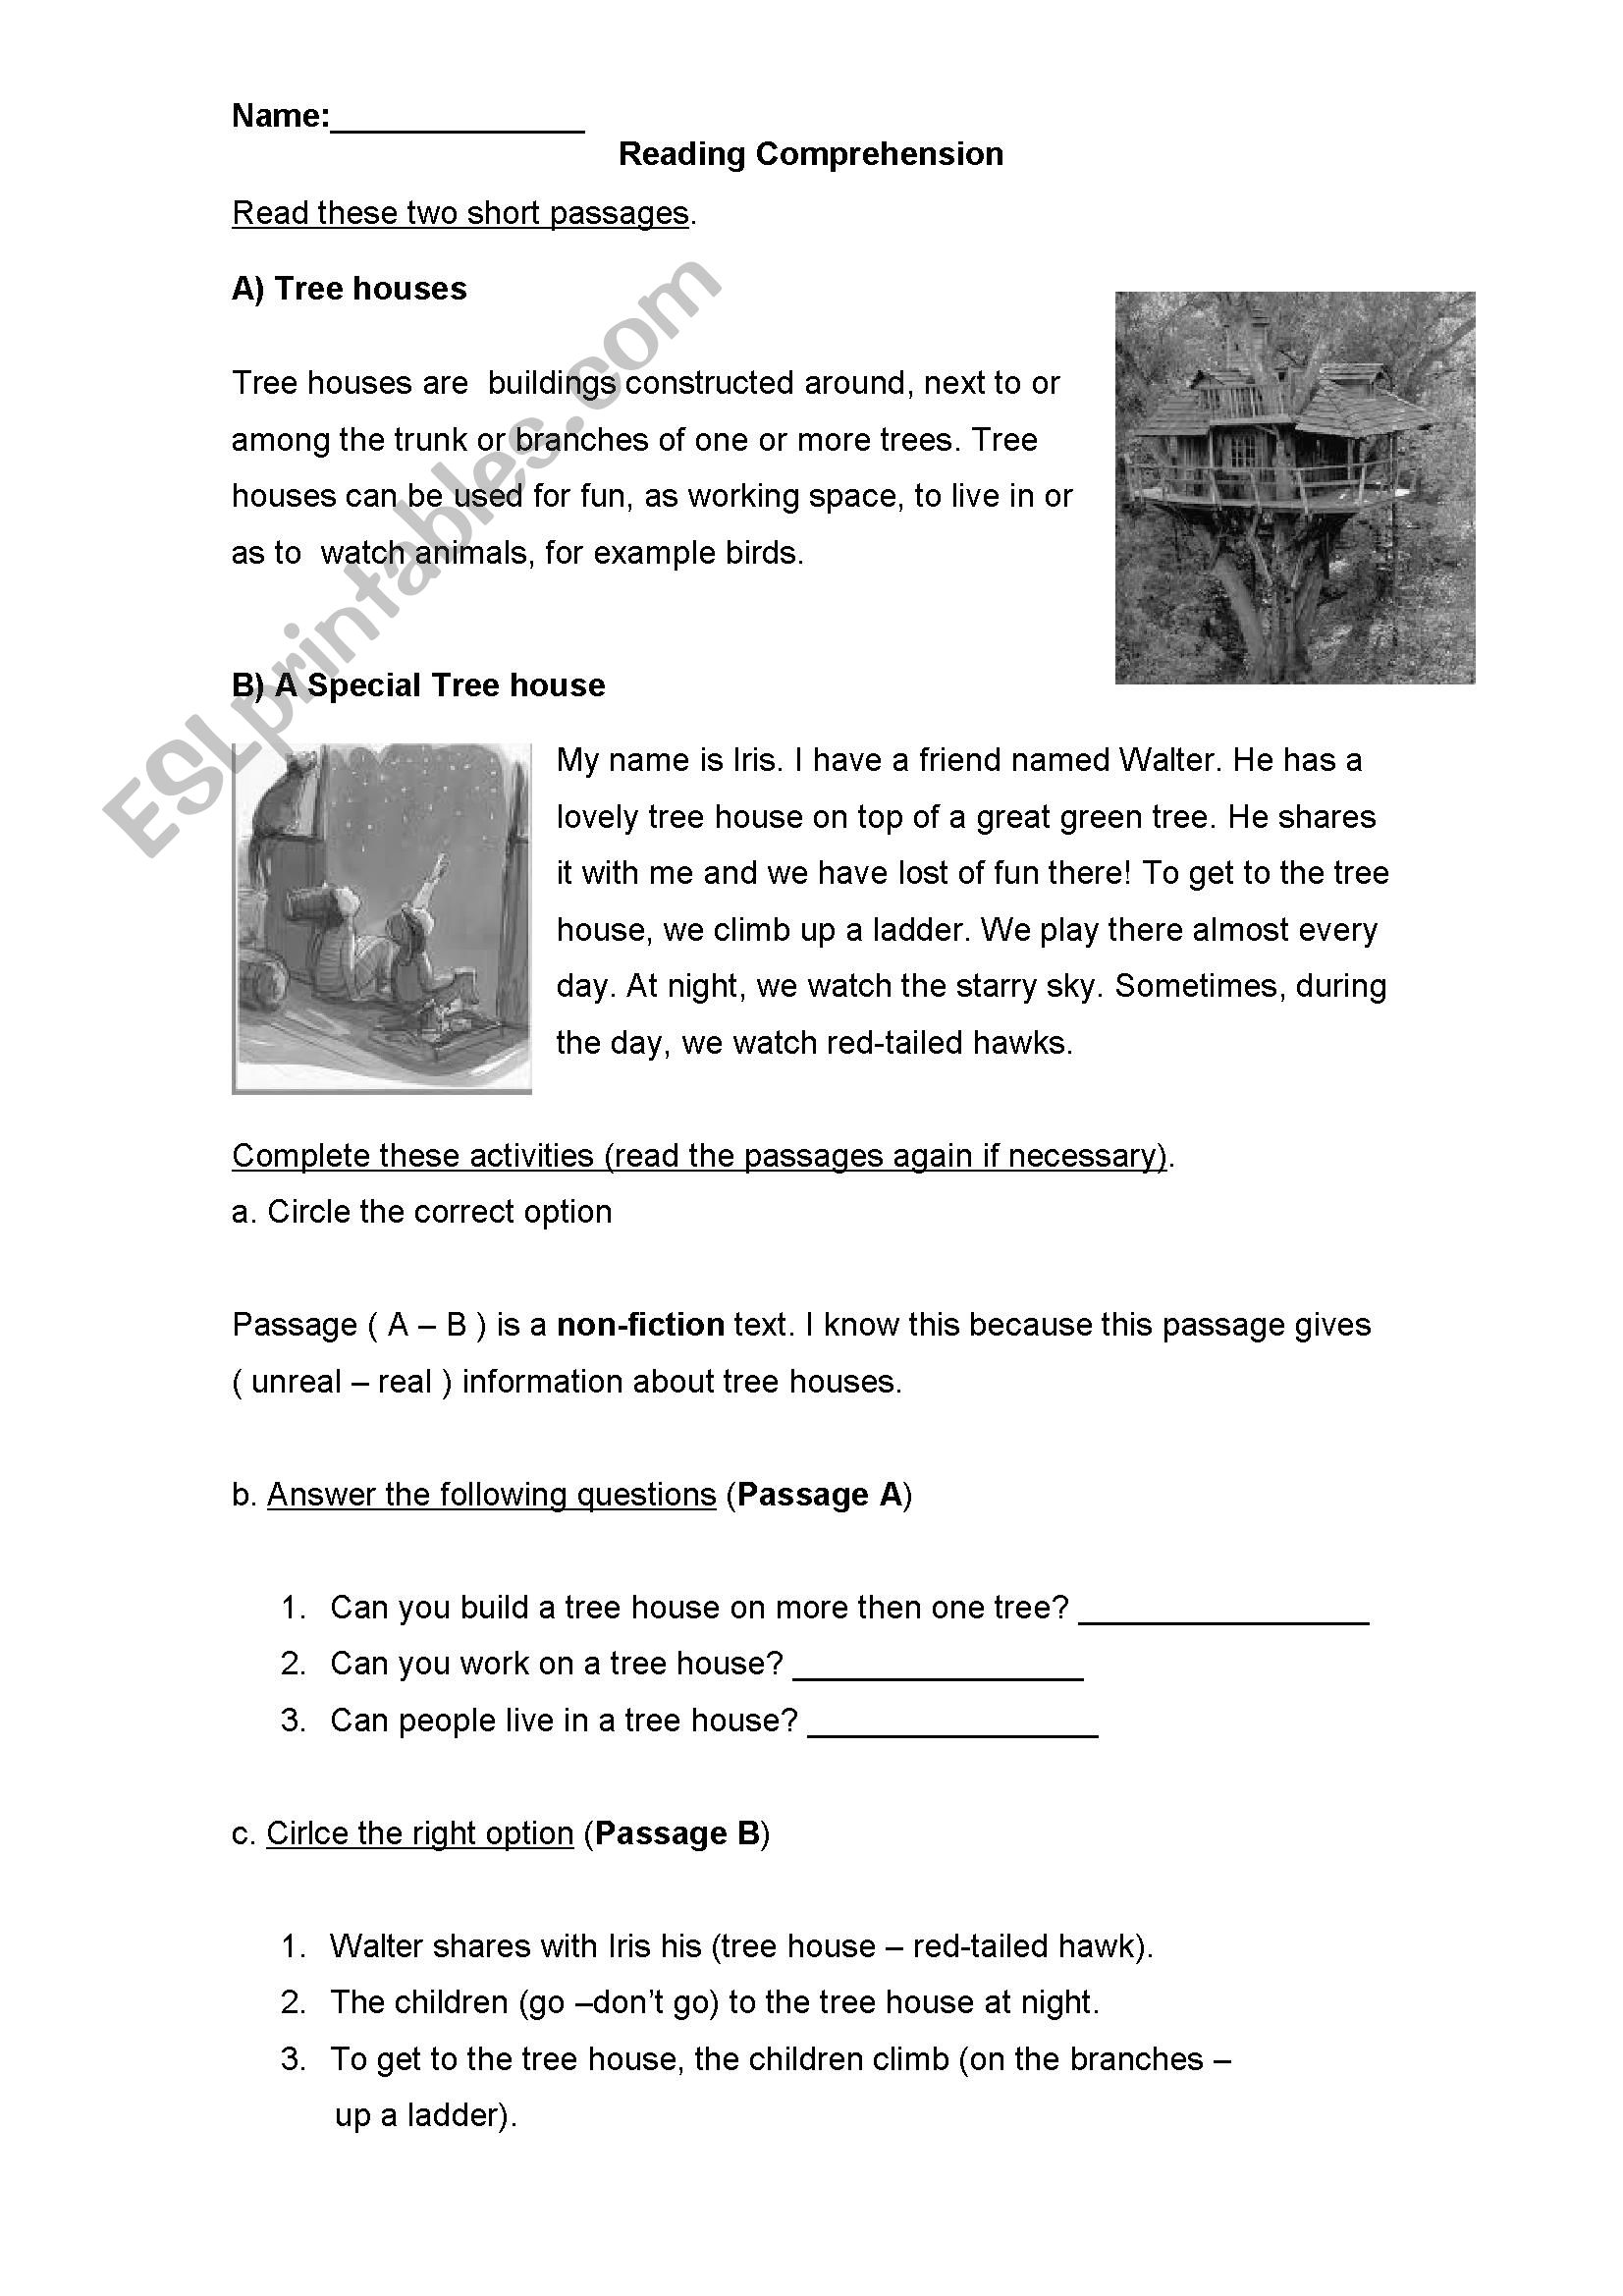 - Tree-Houses - Reading Comprehension - ESL Worksheet By Ximenne